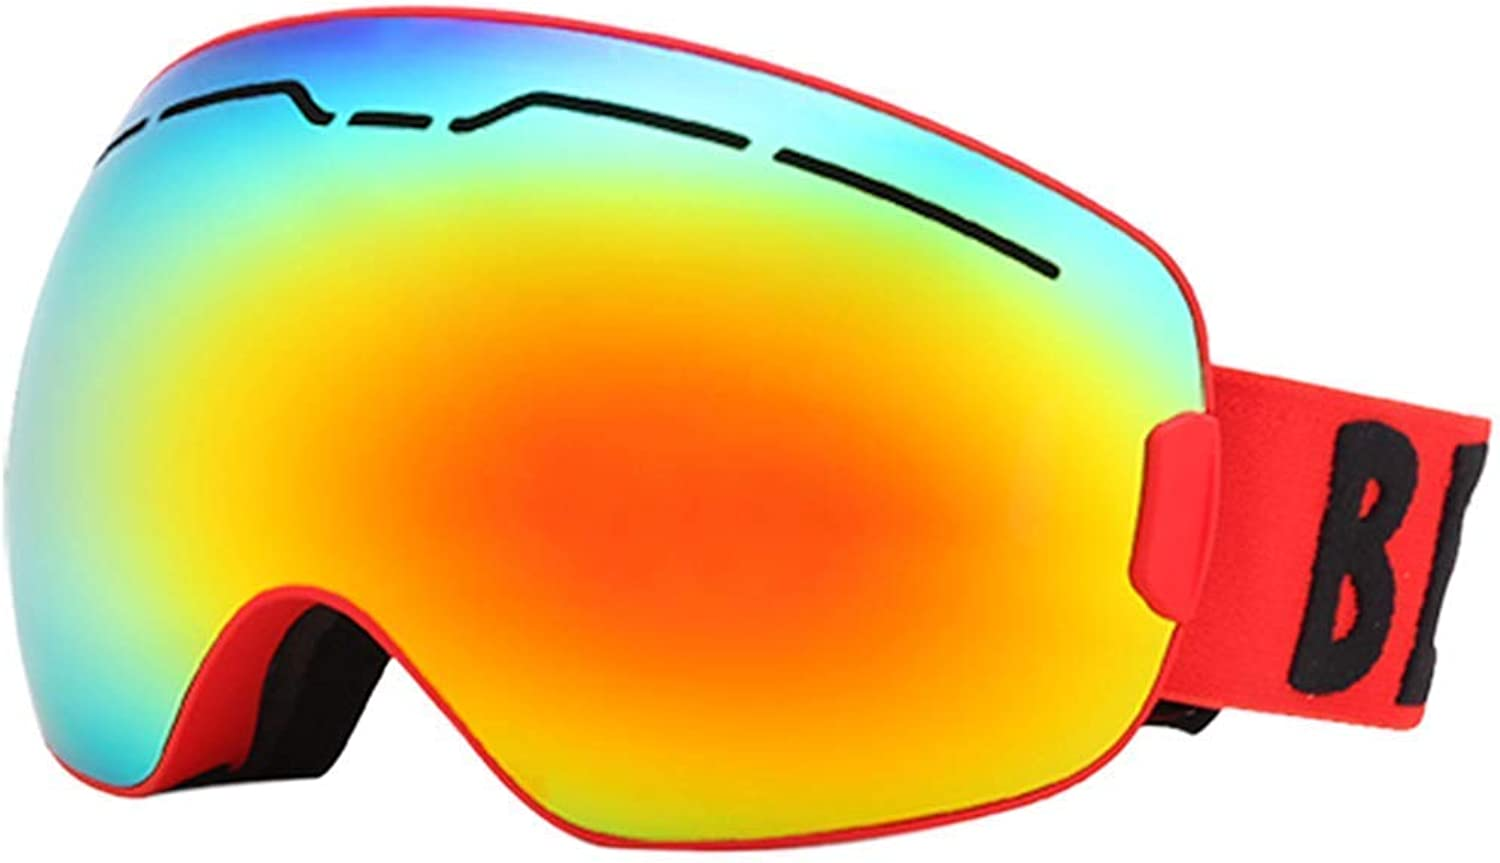 Ski Goggles Sports Glasses Glasses Ski Goggles Double Anti-Fog Damping WarmthJBP21